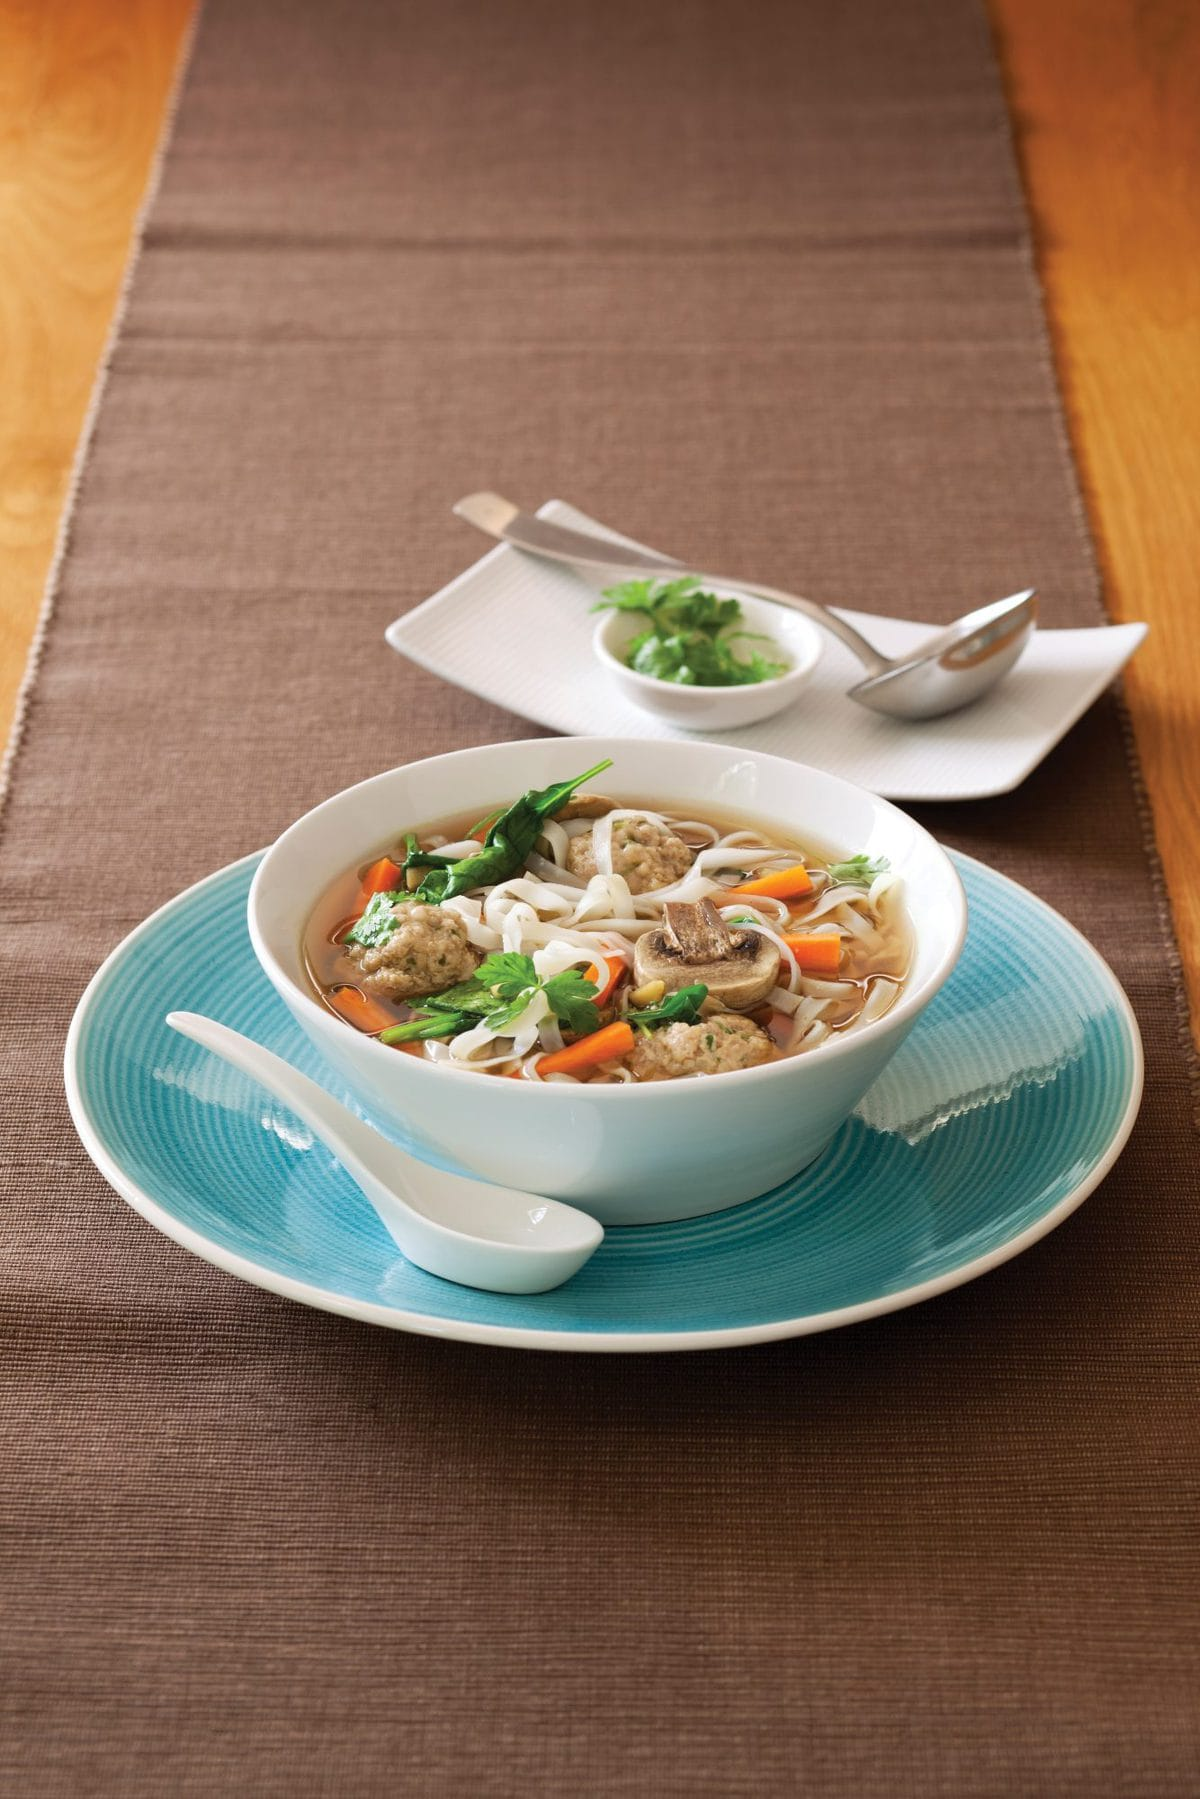 Asian-style meatball and noodle soup